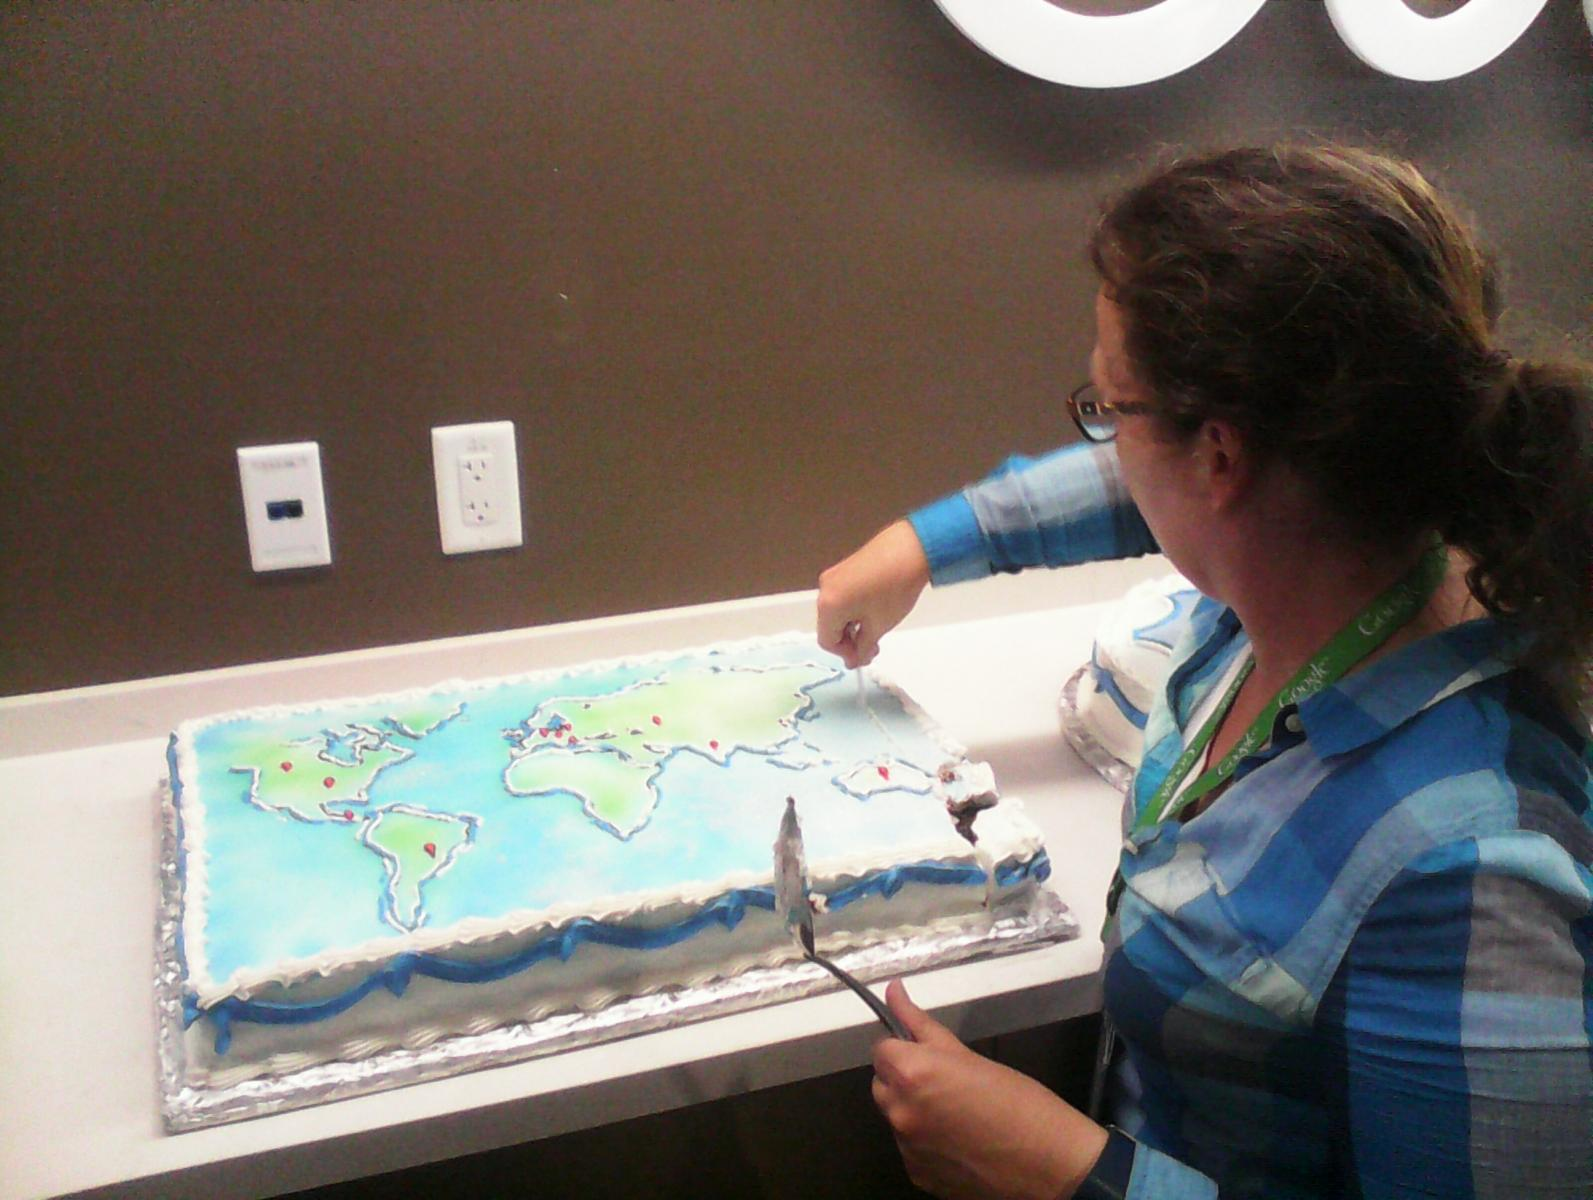 Stephanie cutting the map cake